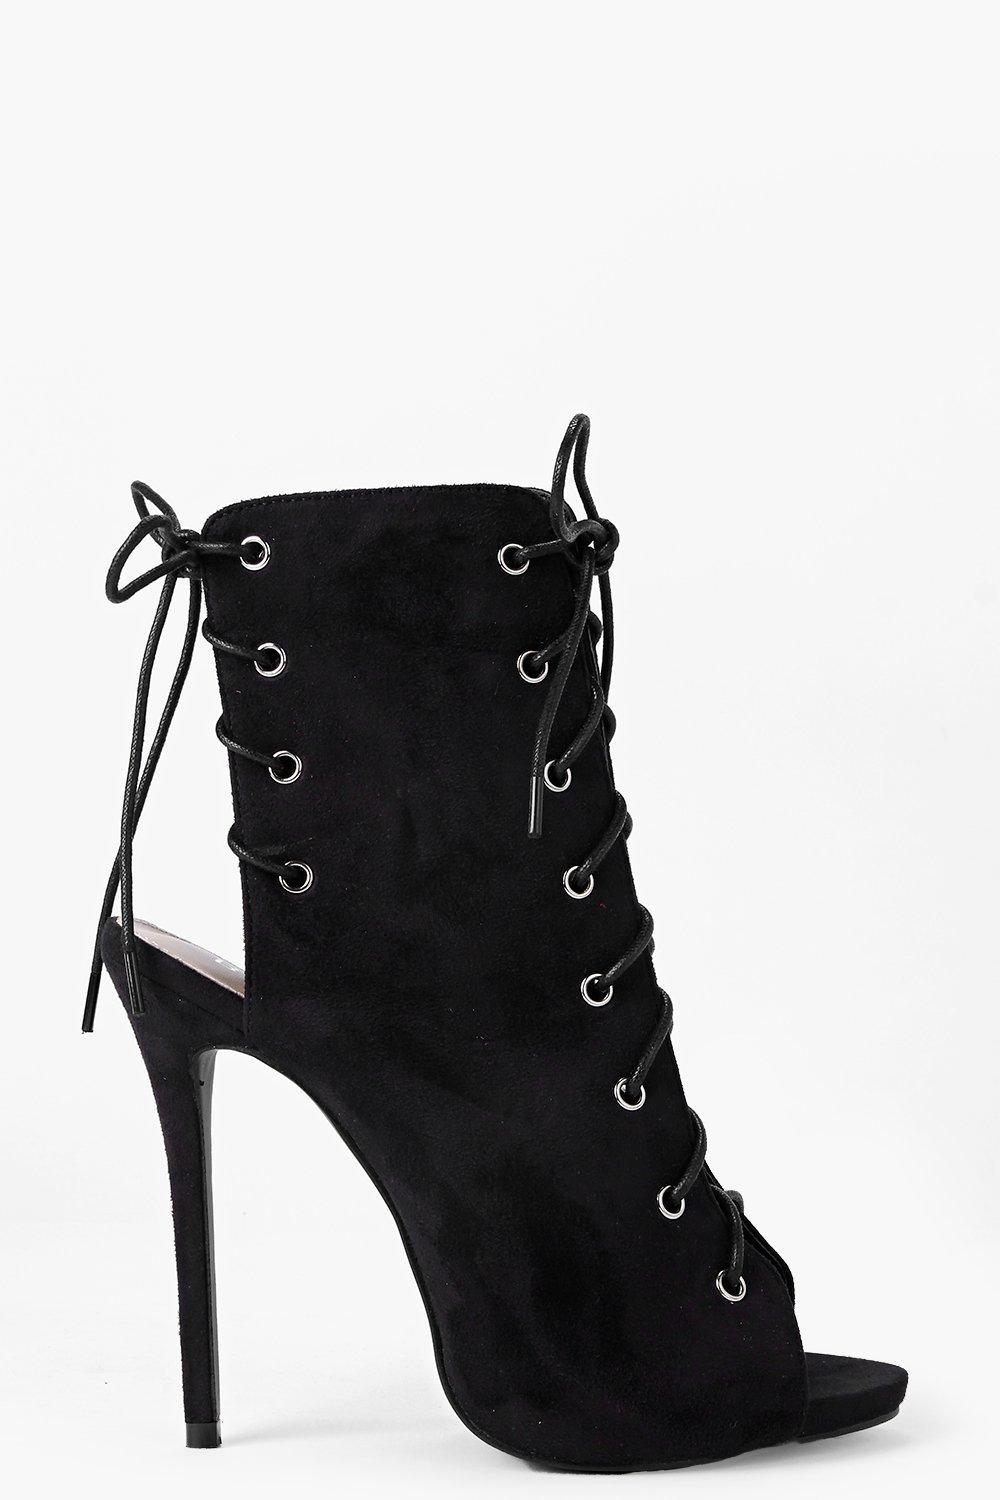 Faye Lace Up Peeptoe Shoe Boot. Hover to zoom d9076b6e7